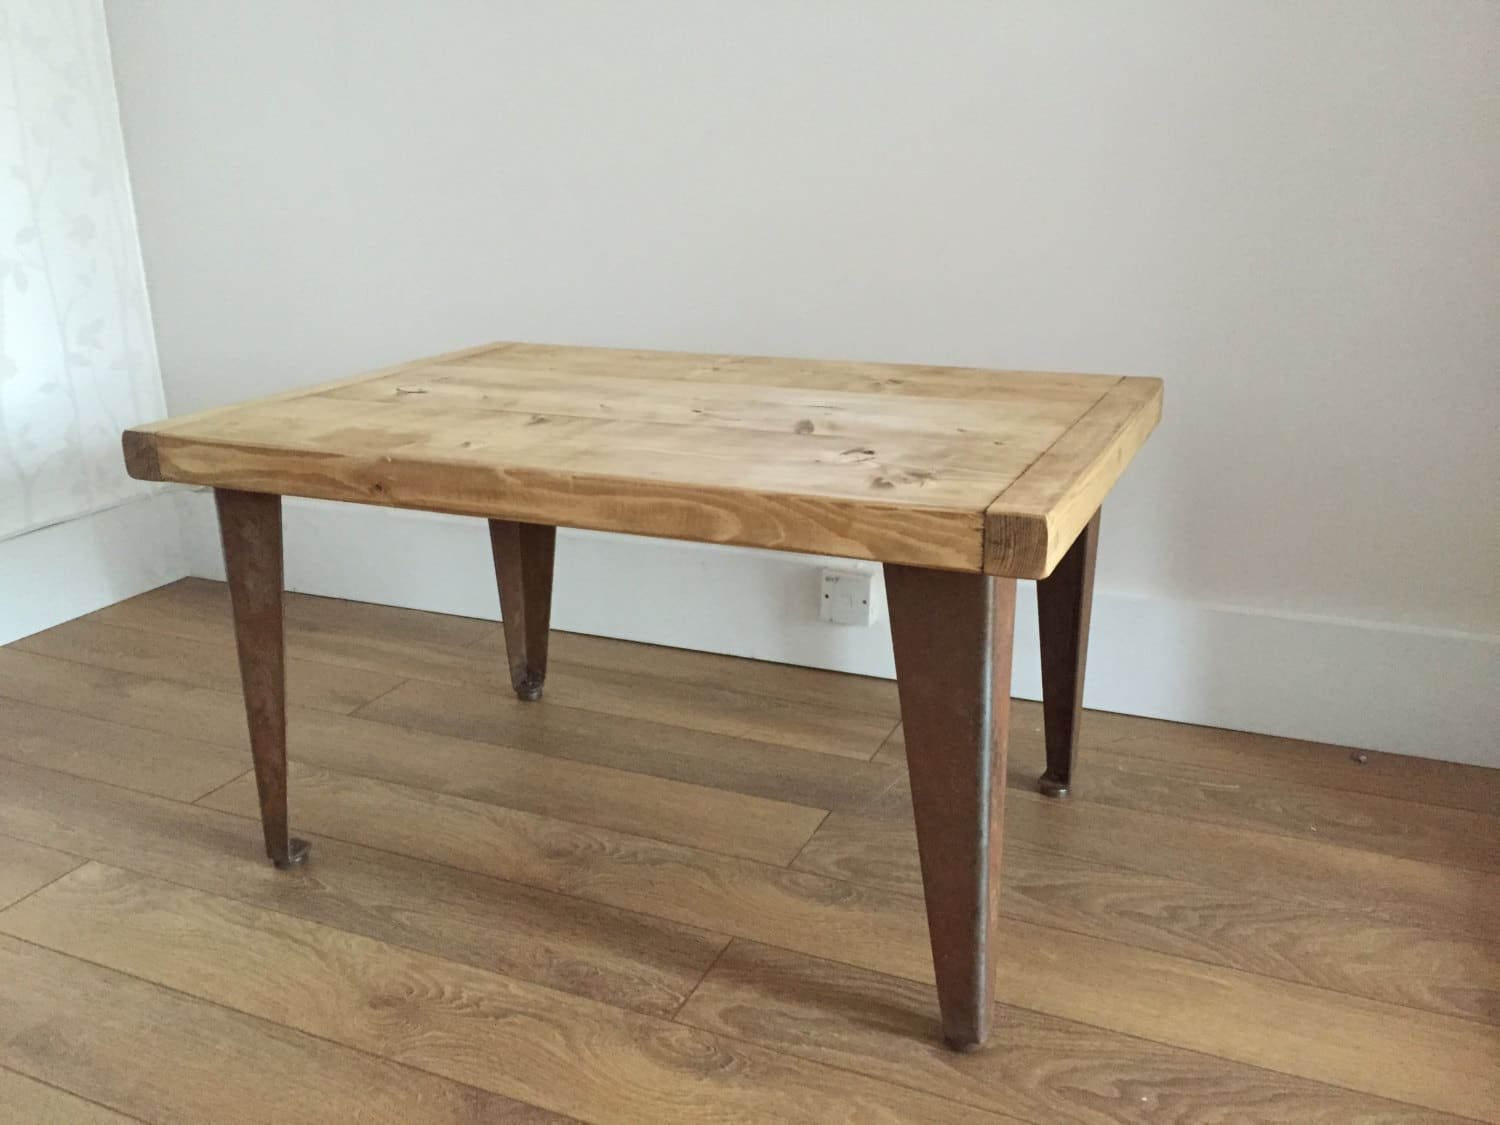 Rustic Pine Coffee Table With Metal Legs